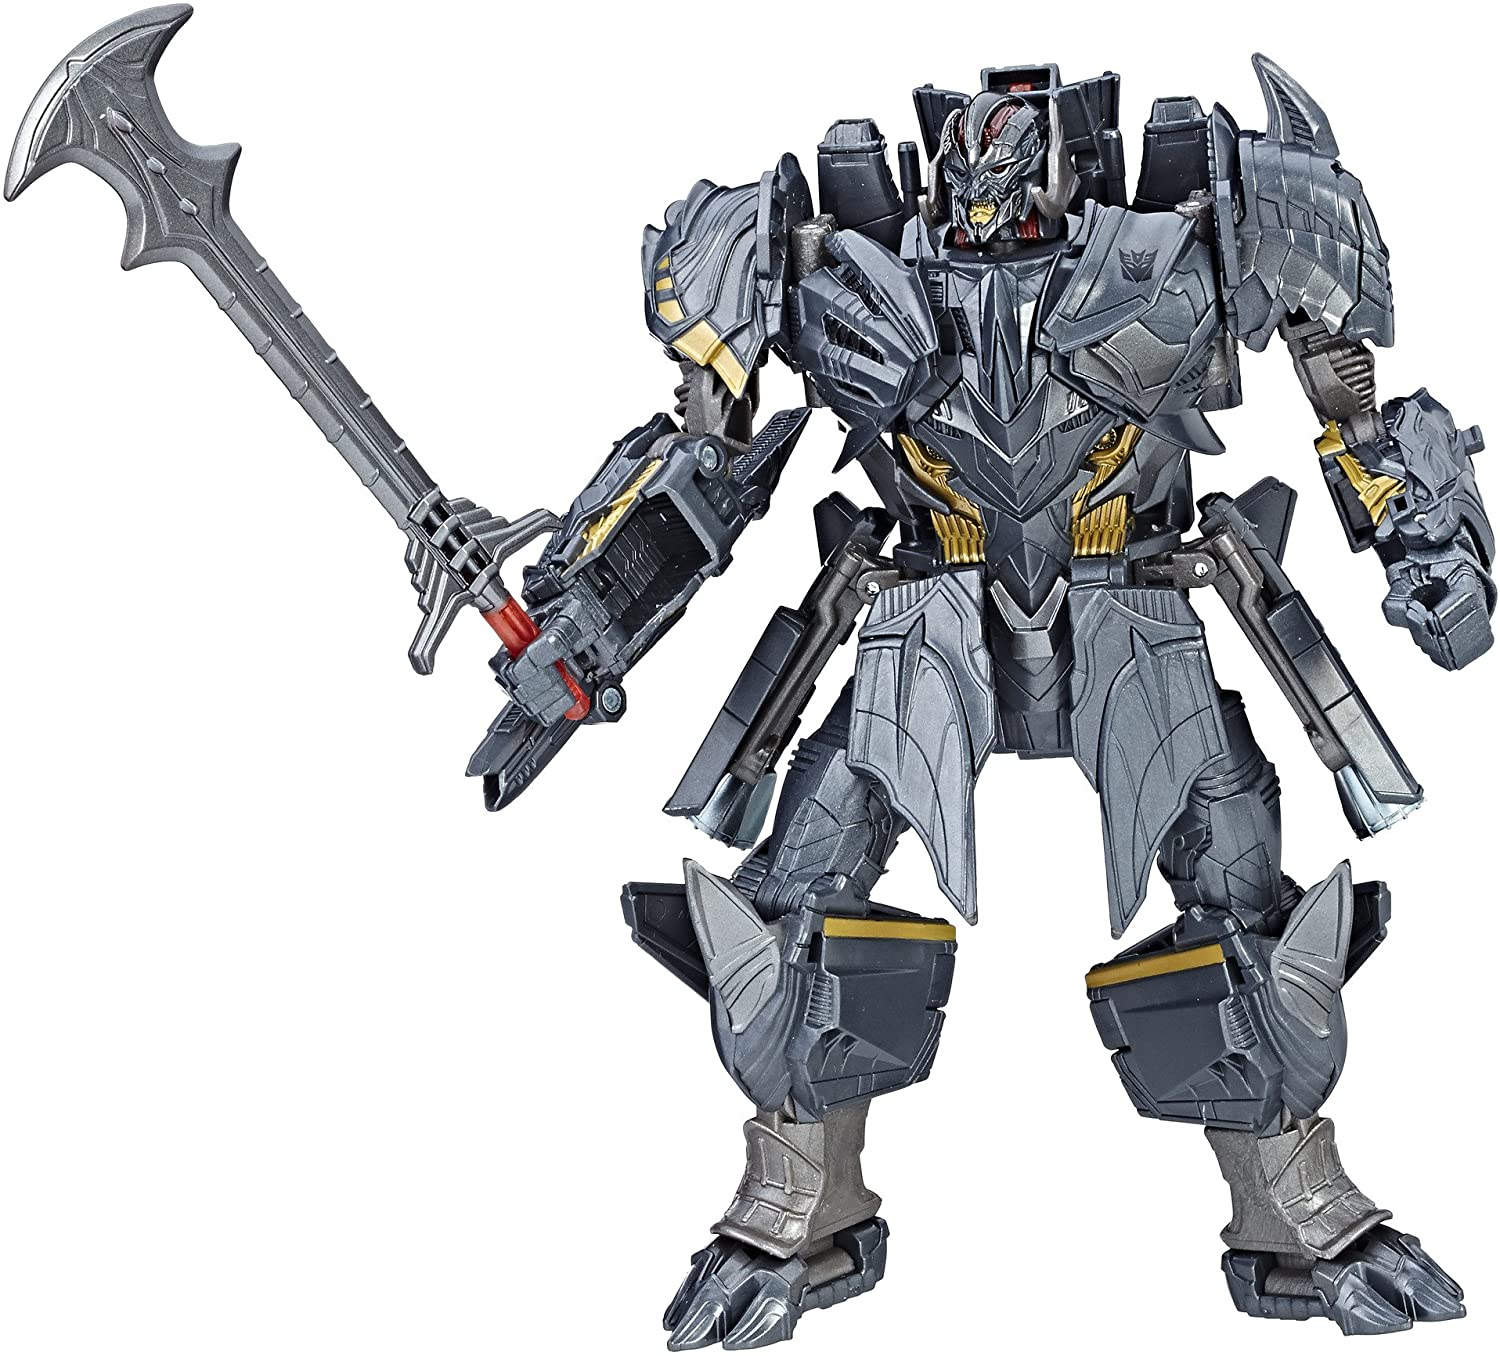 23CM Transformers 5 The Last Knight Megatron PVC Action Figures Robots Toys Gift